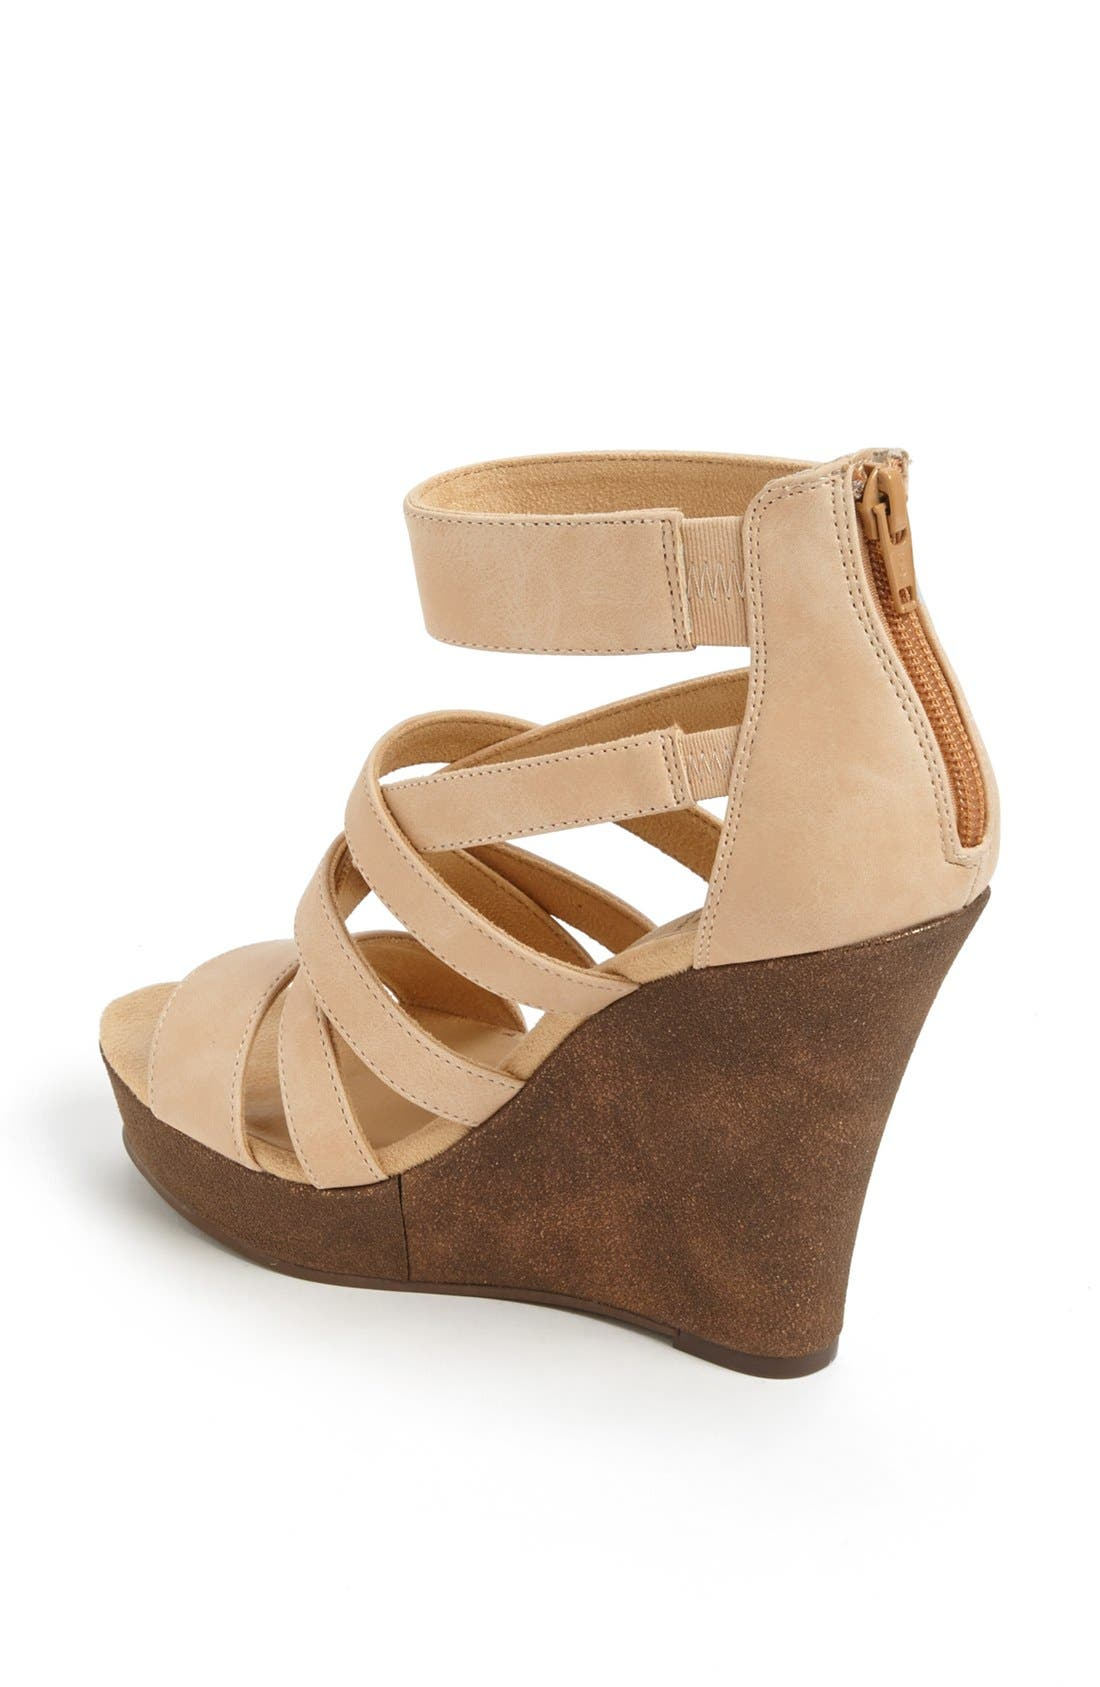 'Tell You What' Wedge Sandal,                             Alternate thumbnail 2, color,                             Nude